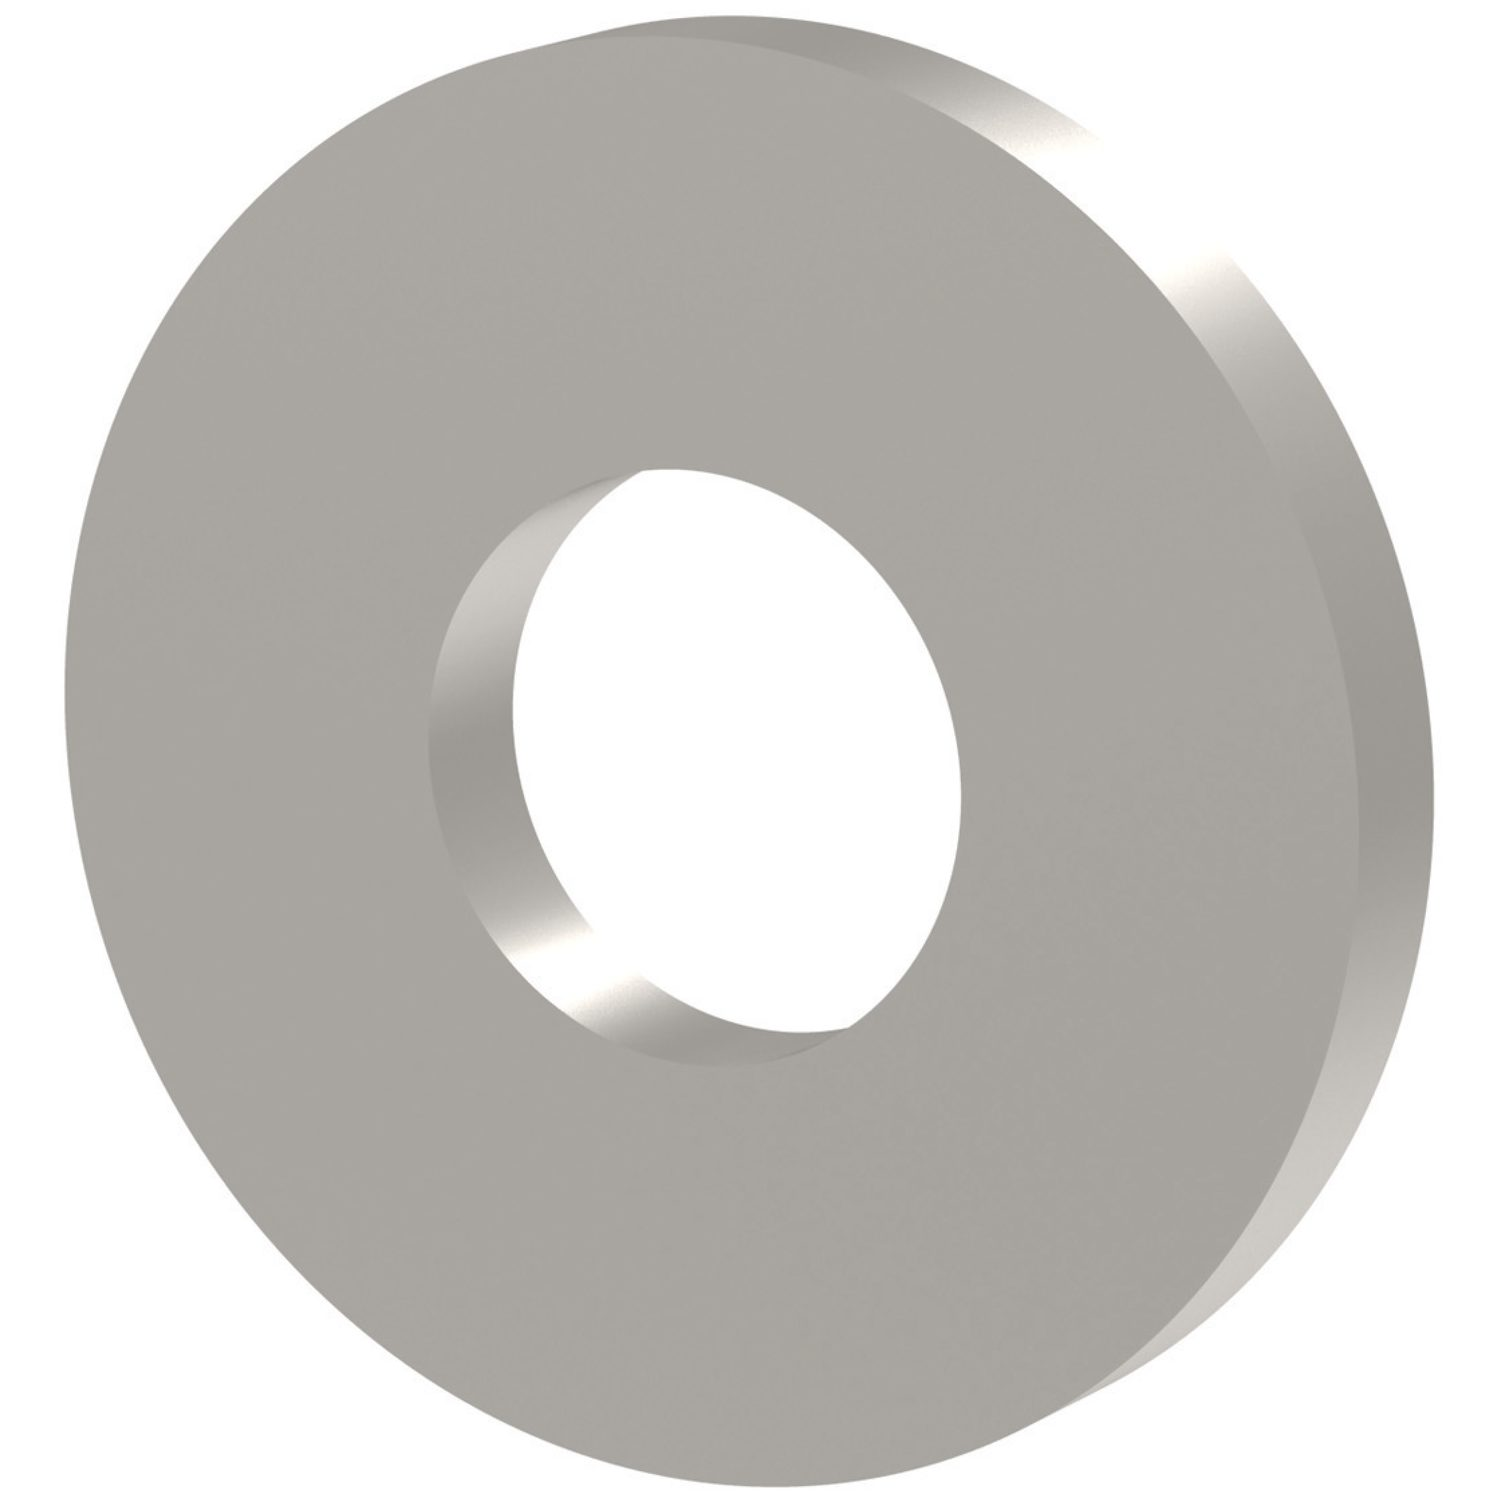 P0337.A4 - Large Diameter Washers